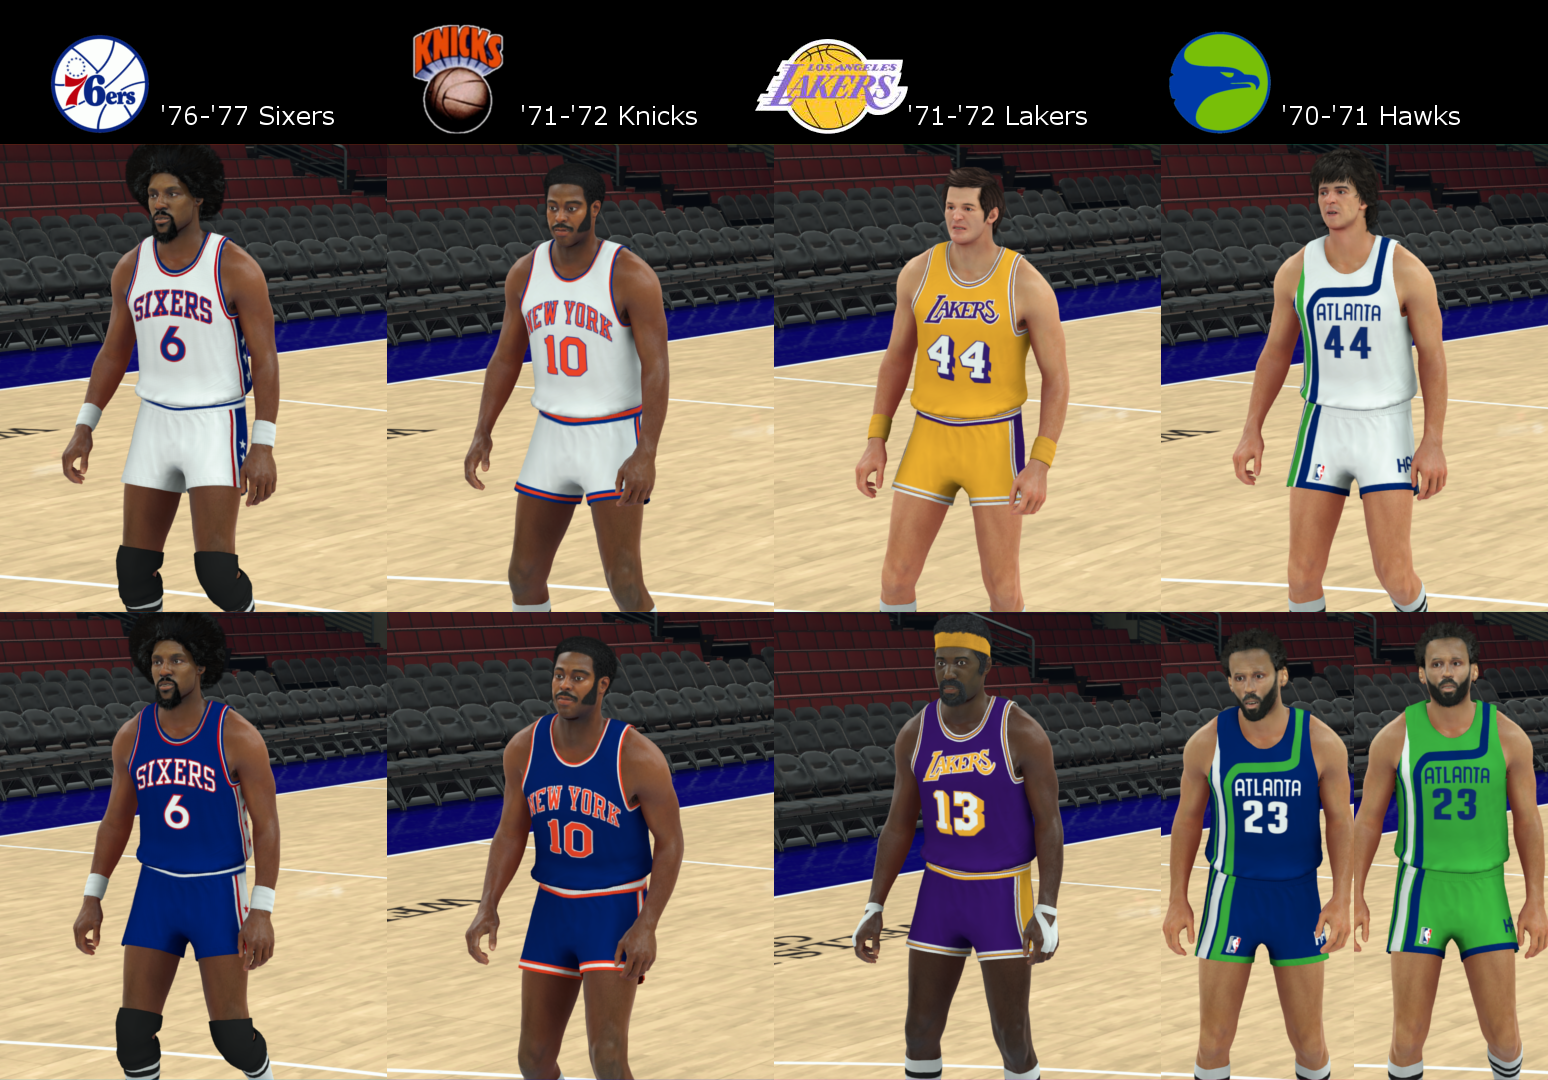 1960s-70s Classic Team Jersey Pack